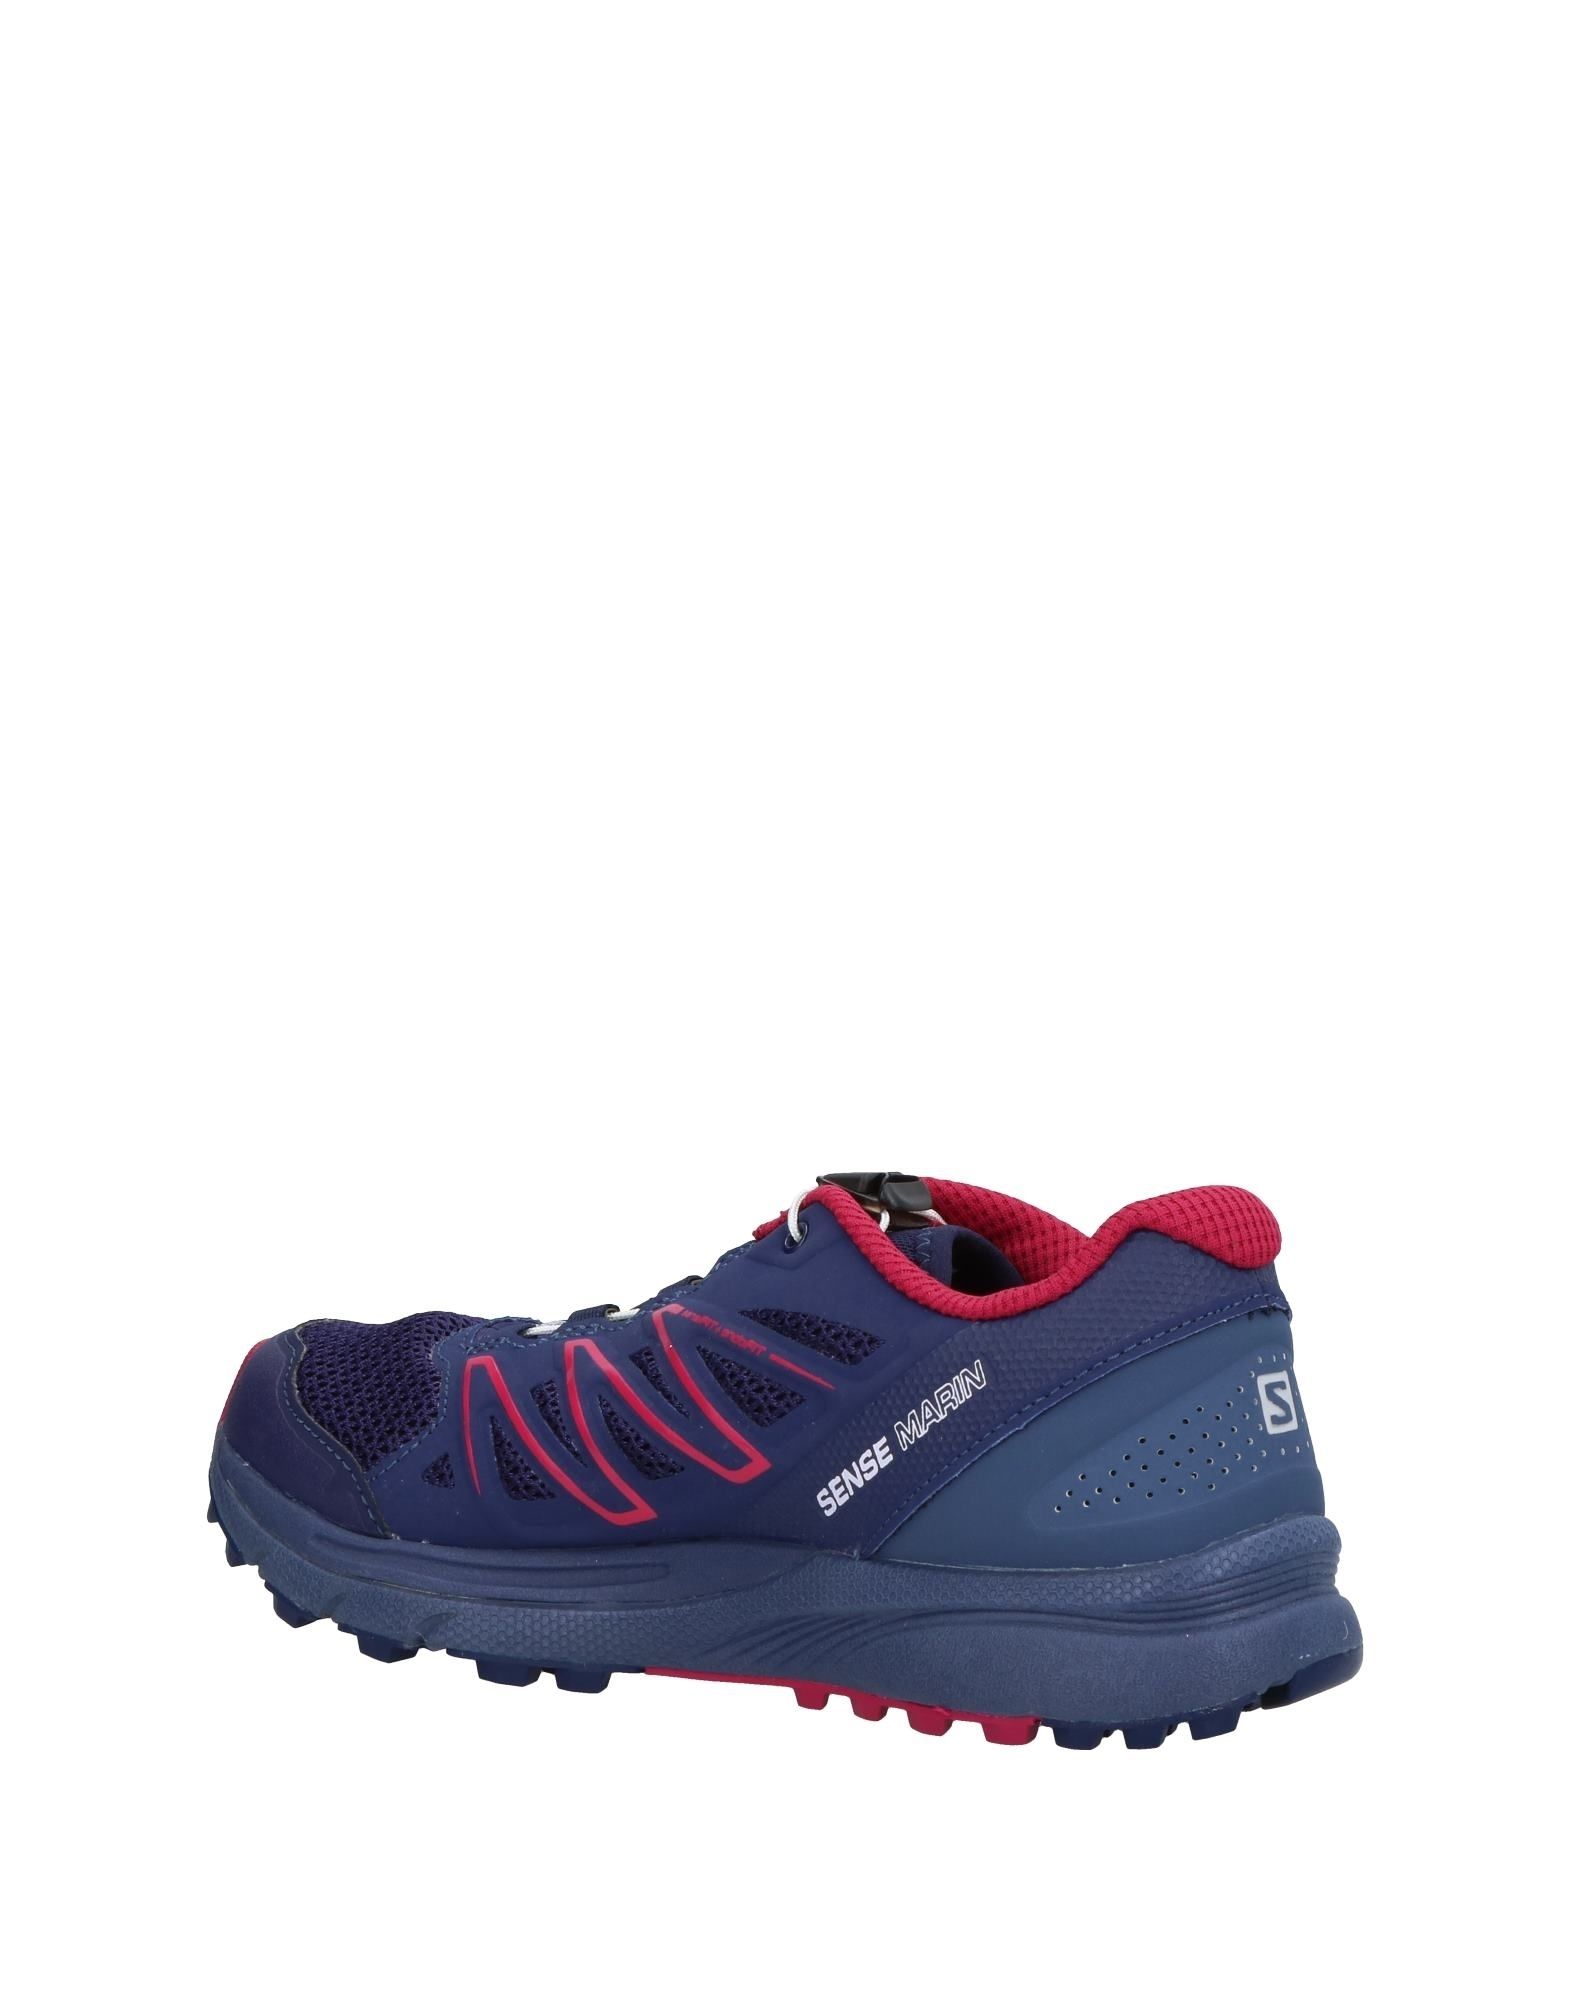 Sneakers Salomon Femme - Sneakers Salomon sur